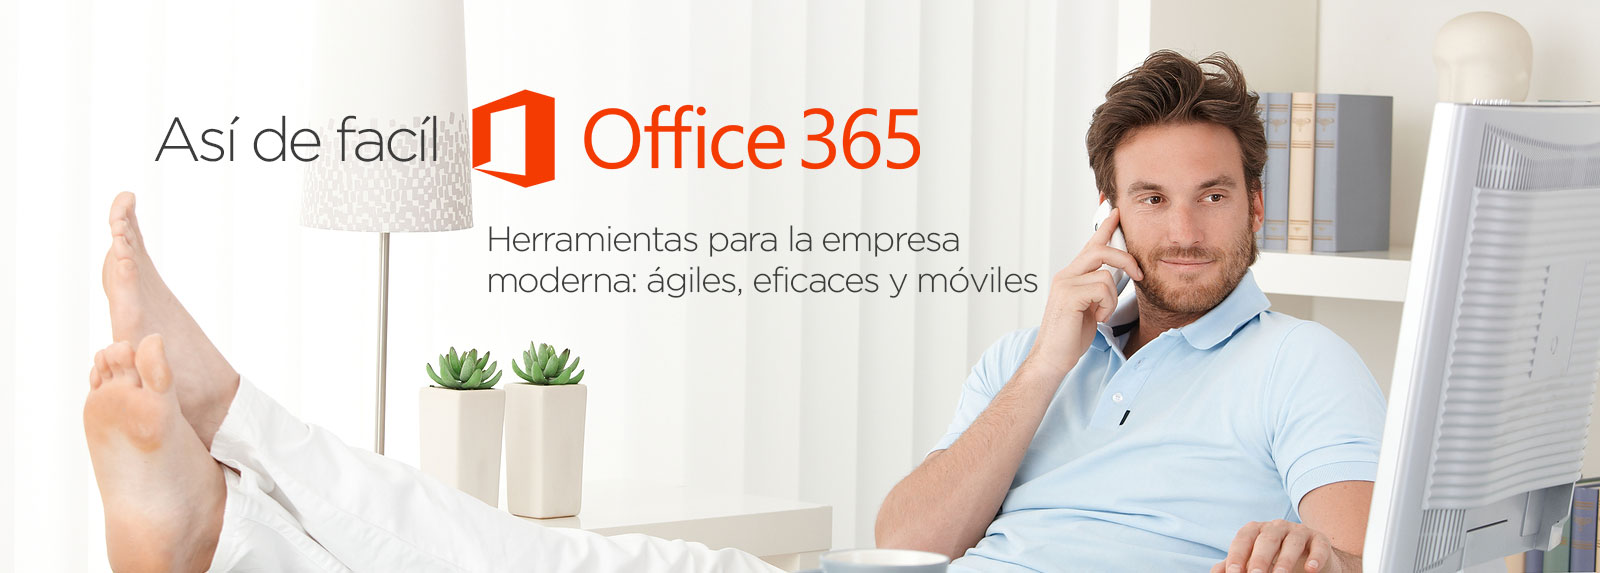 cabecera-office-365